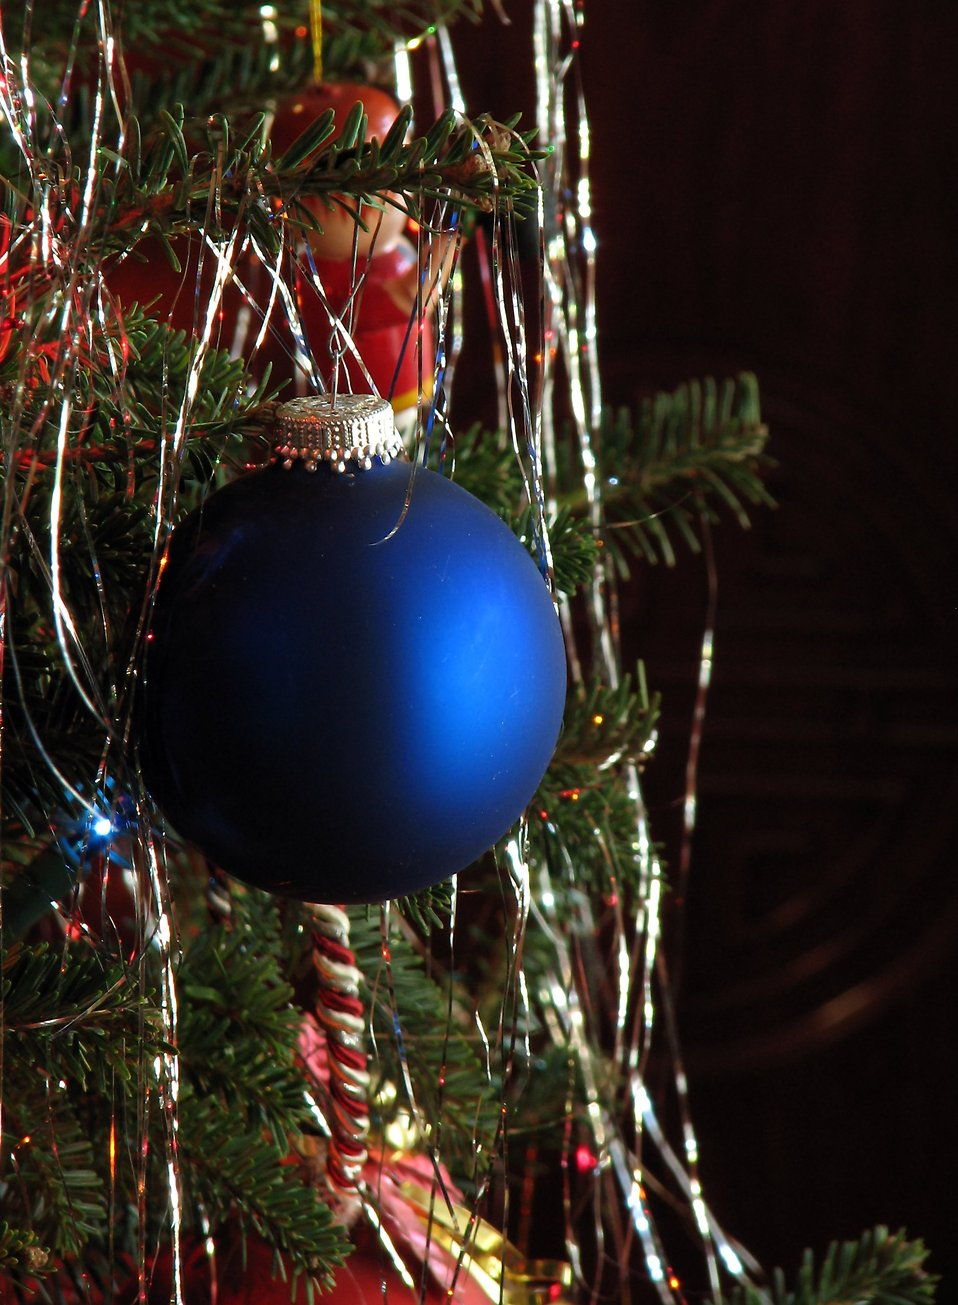 A blue Christmas ornament on a tree : Free Stock Photo